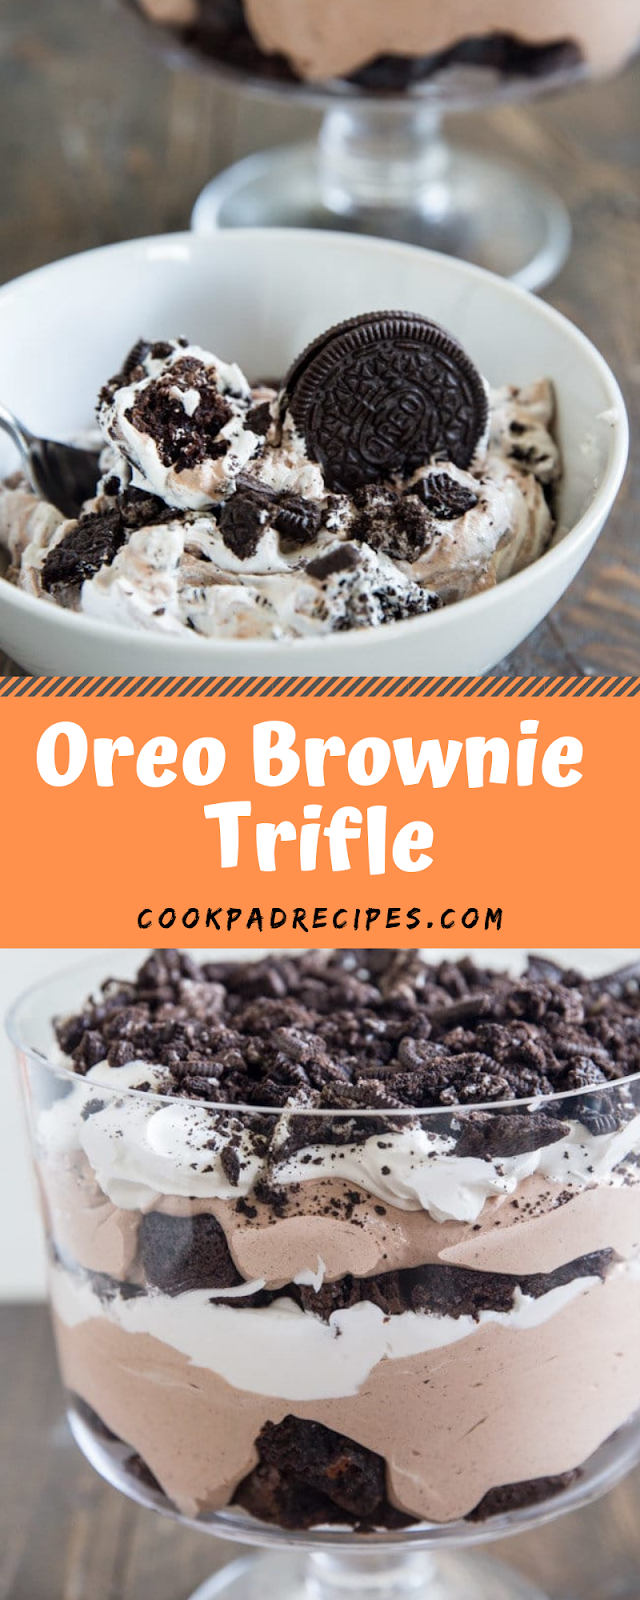 Oreo Brownie Trifle